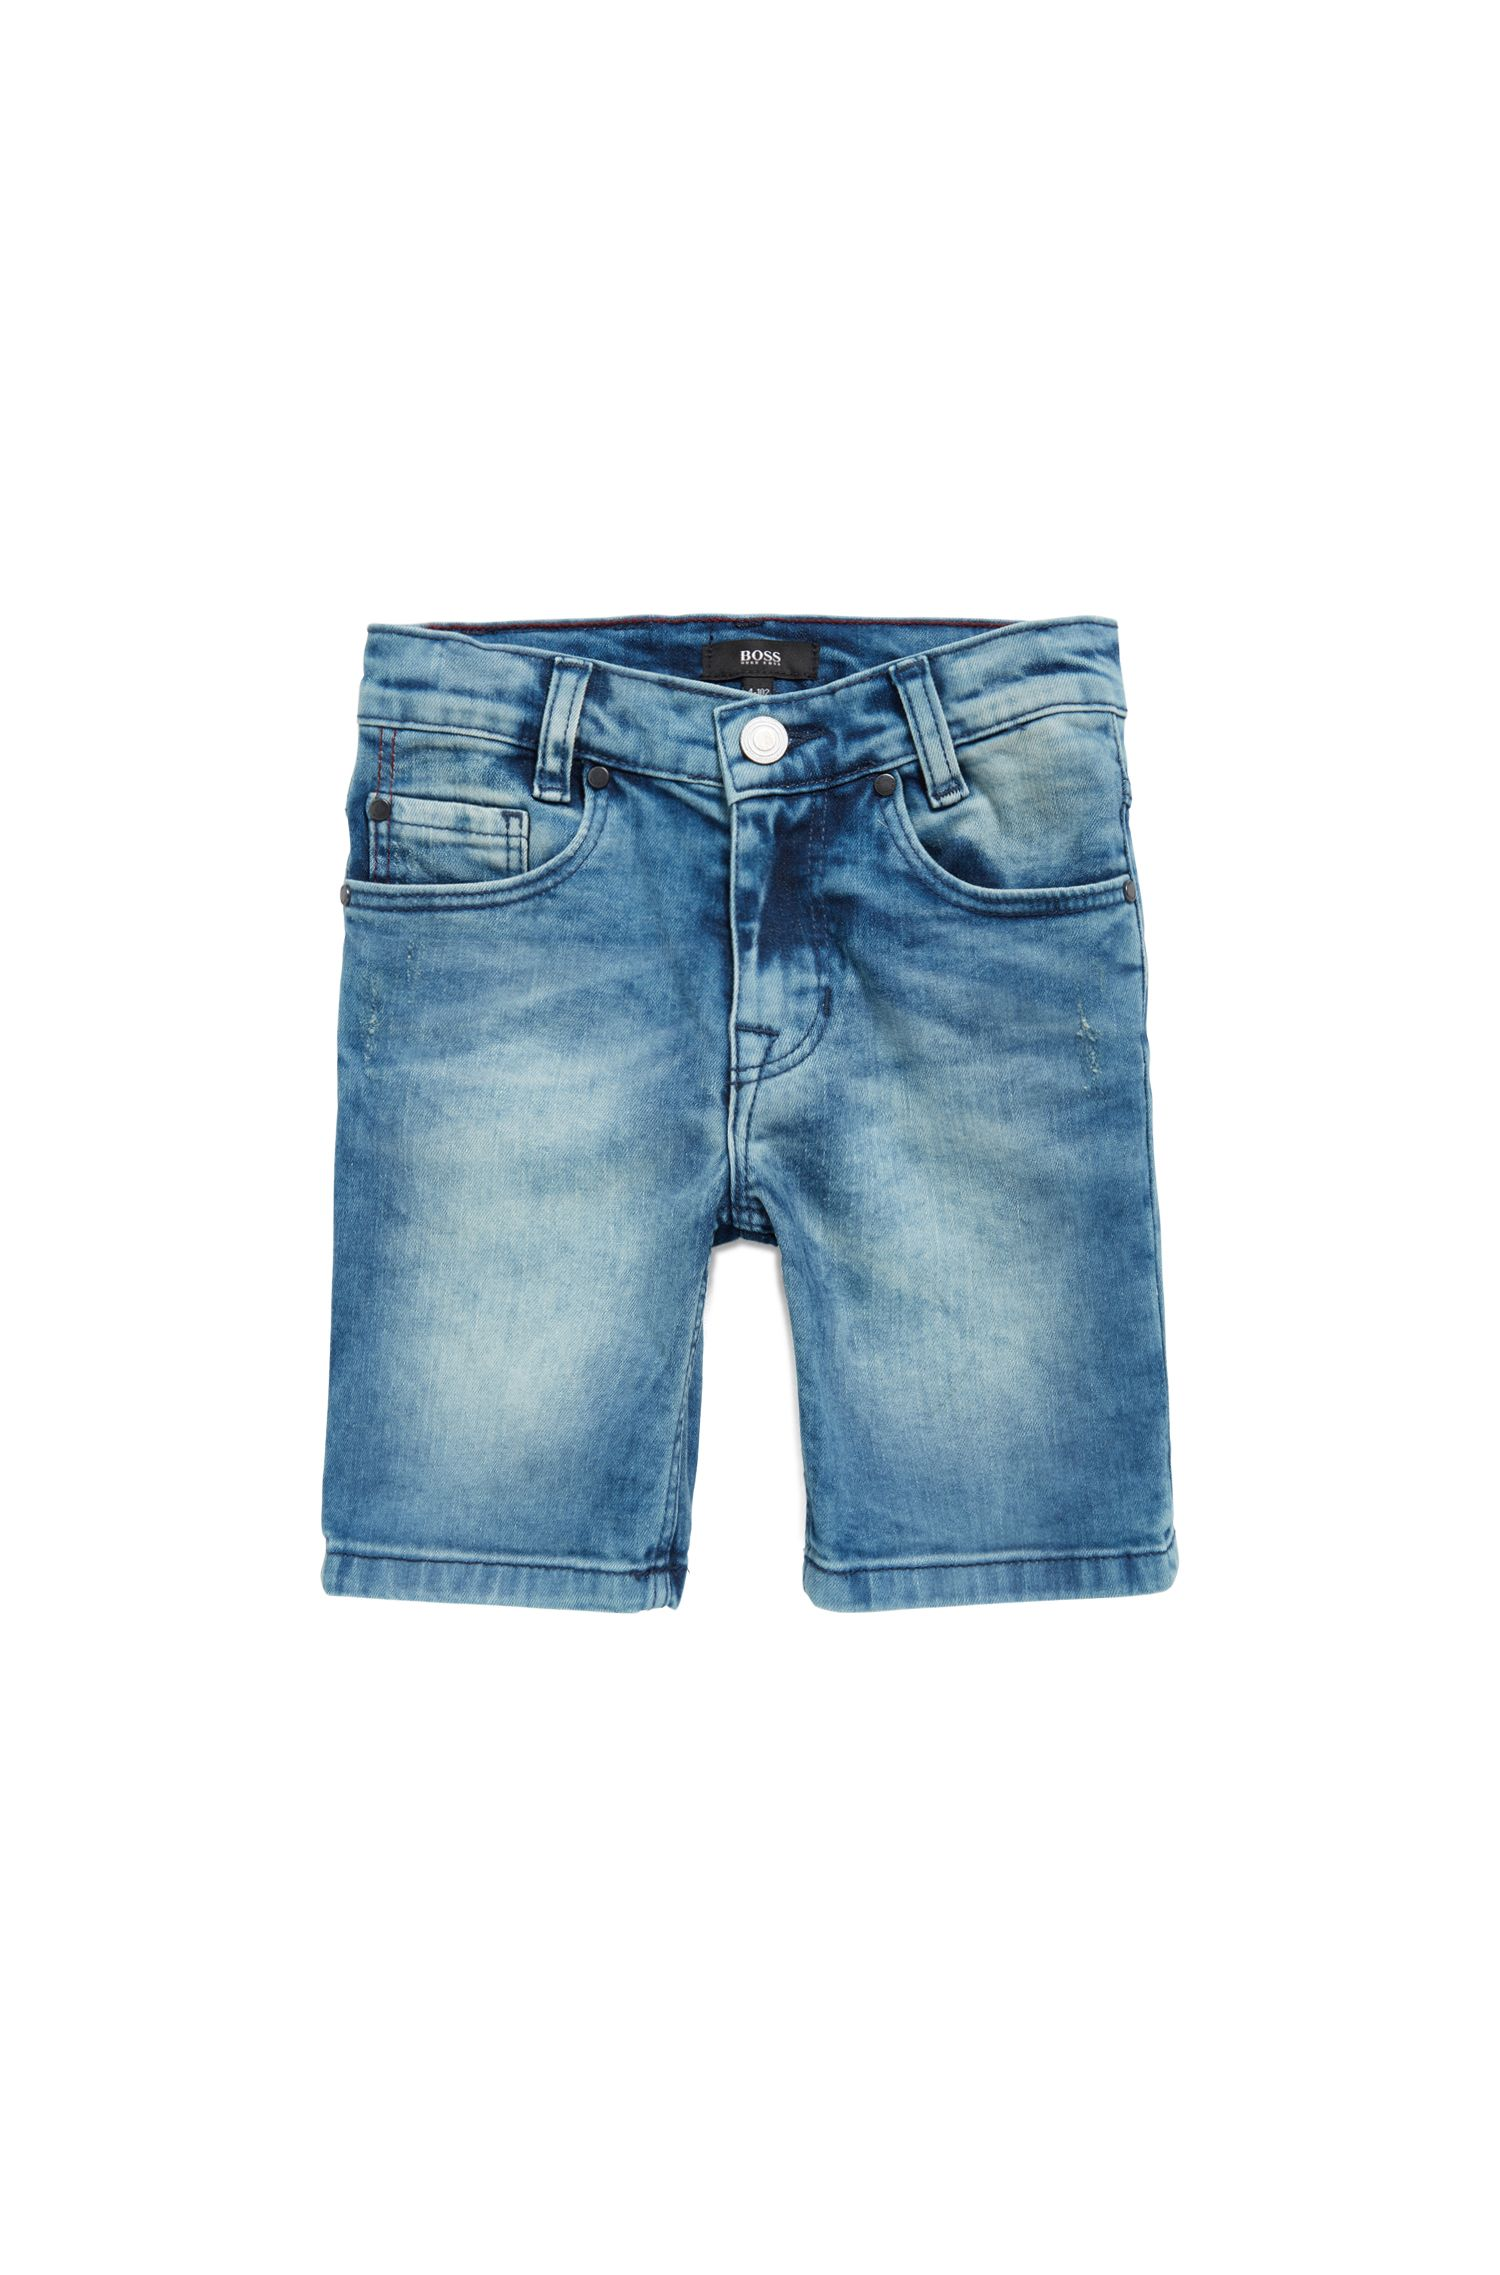 Kids-Bermudas aus Stretch-Denim